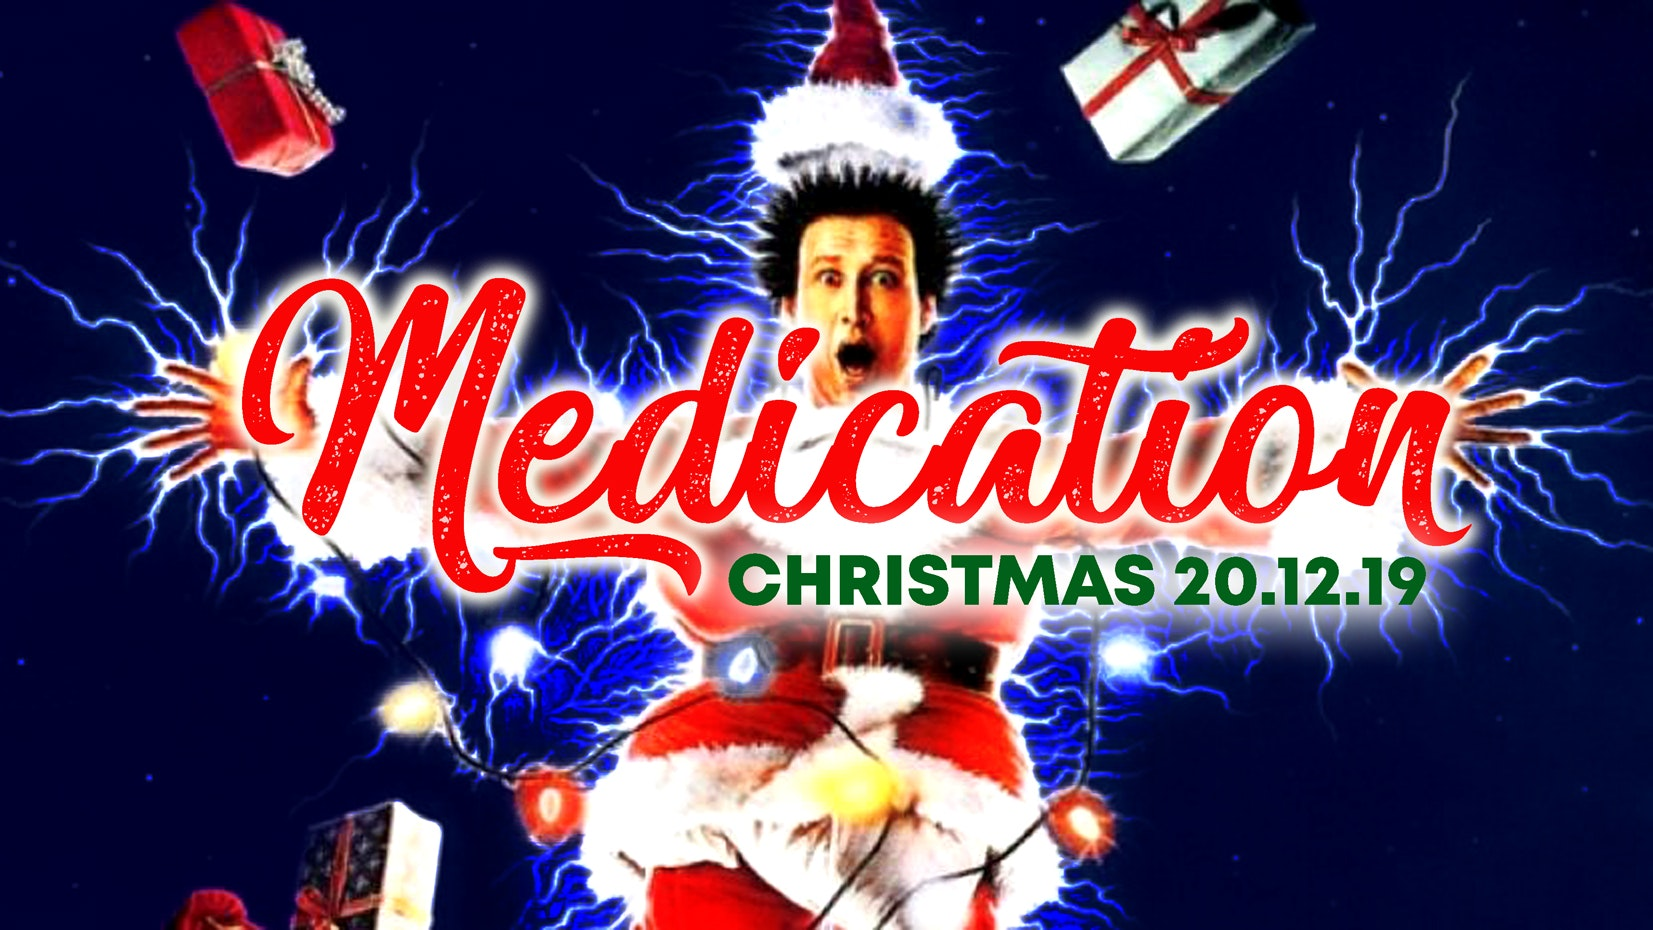 MEDICATION – CHRISTMAS